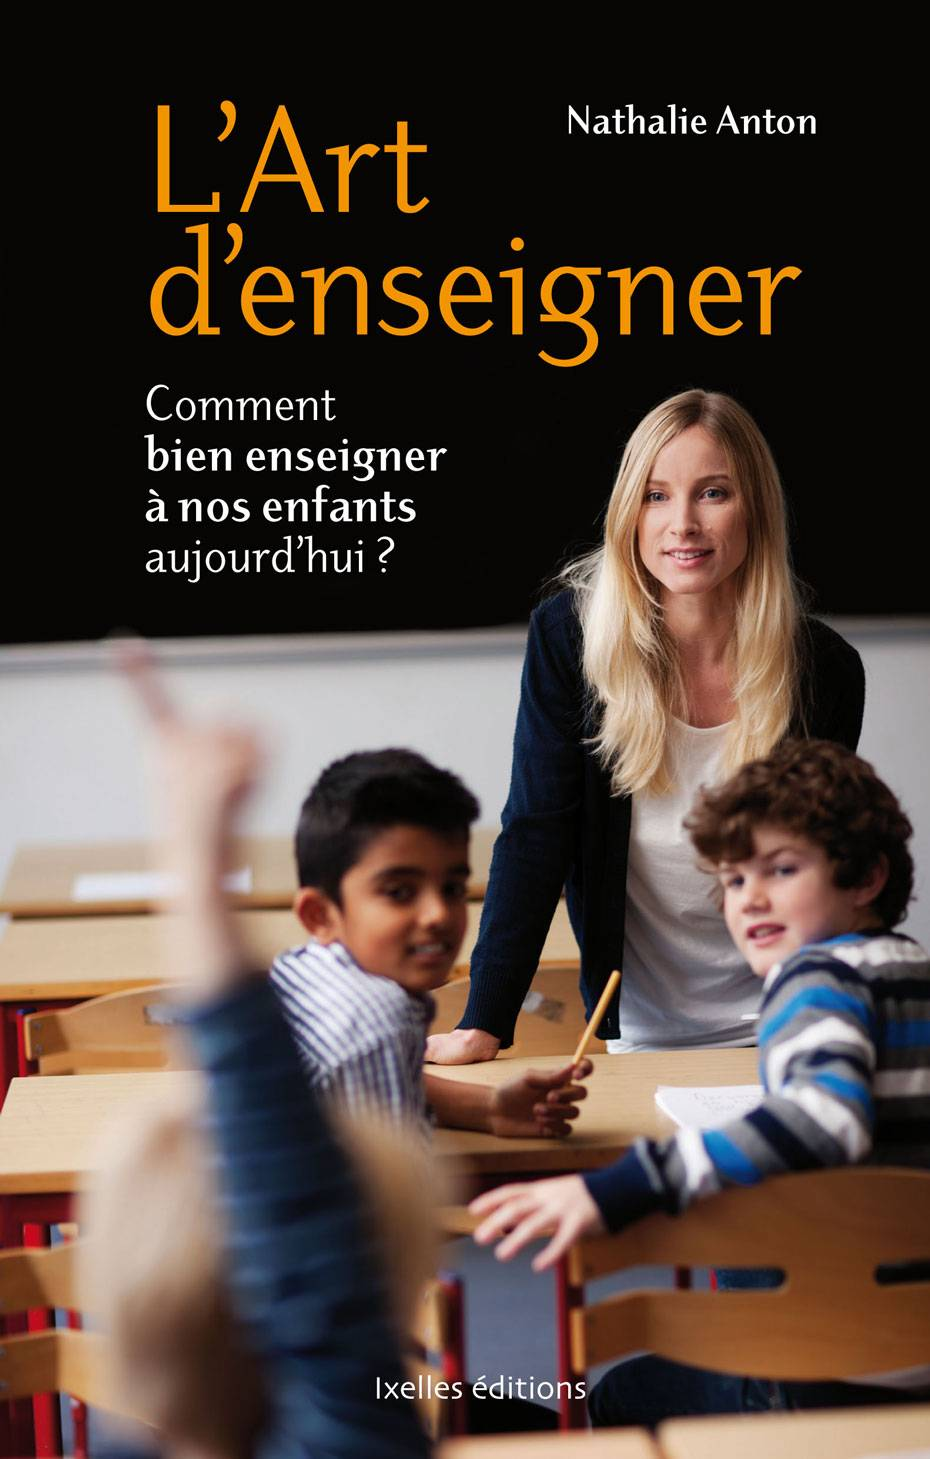 L'art d'enseigner